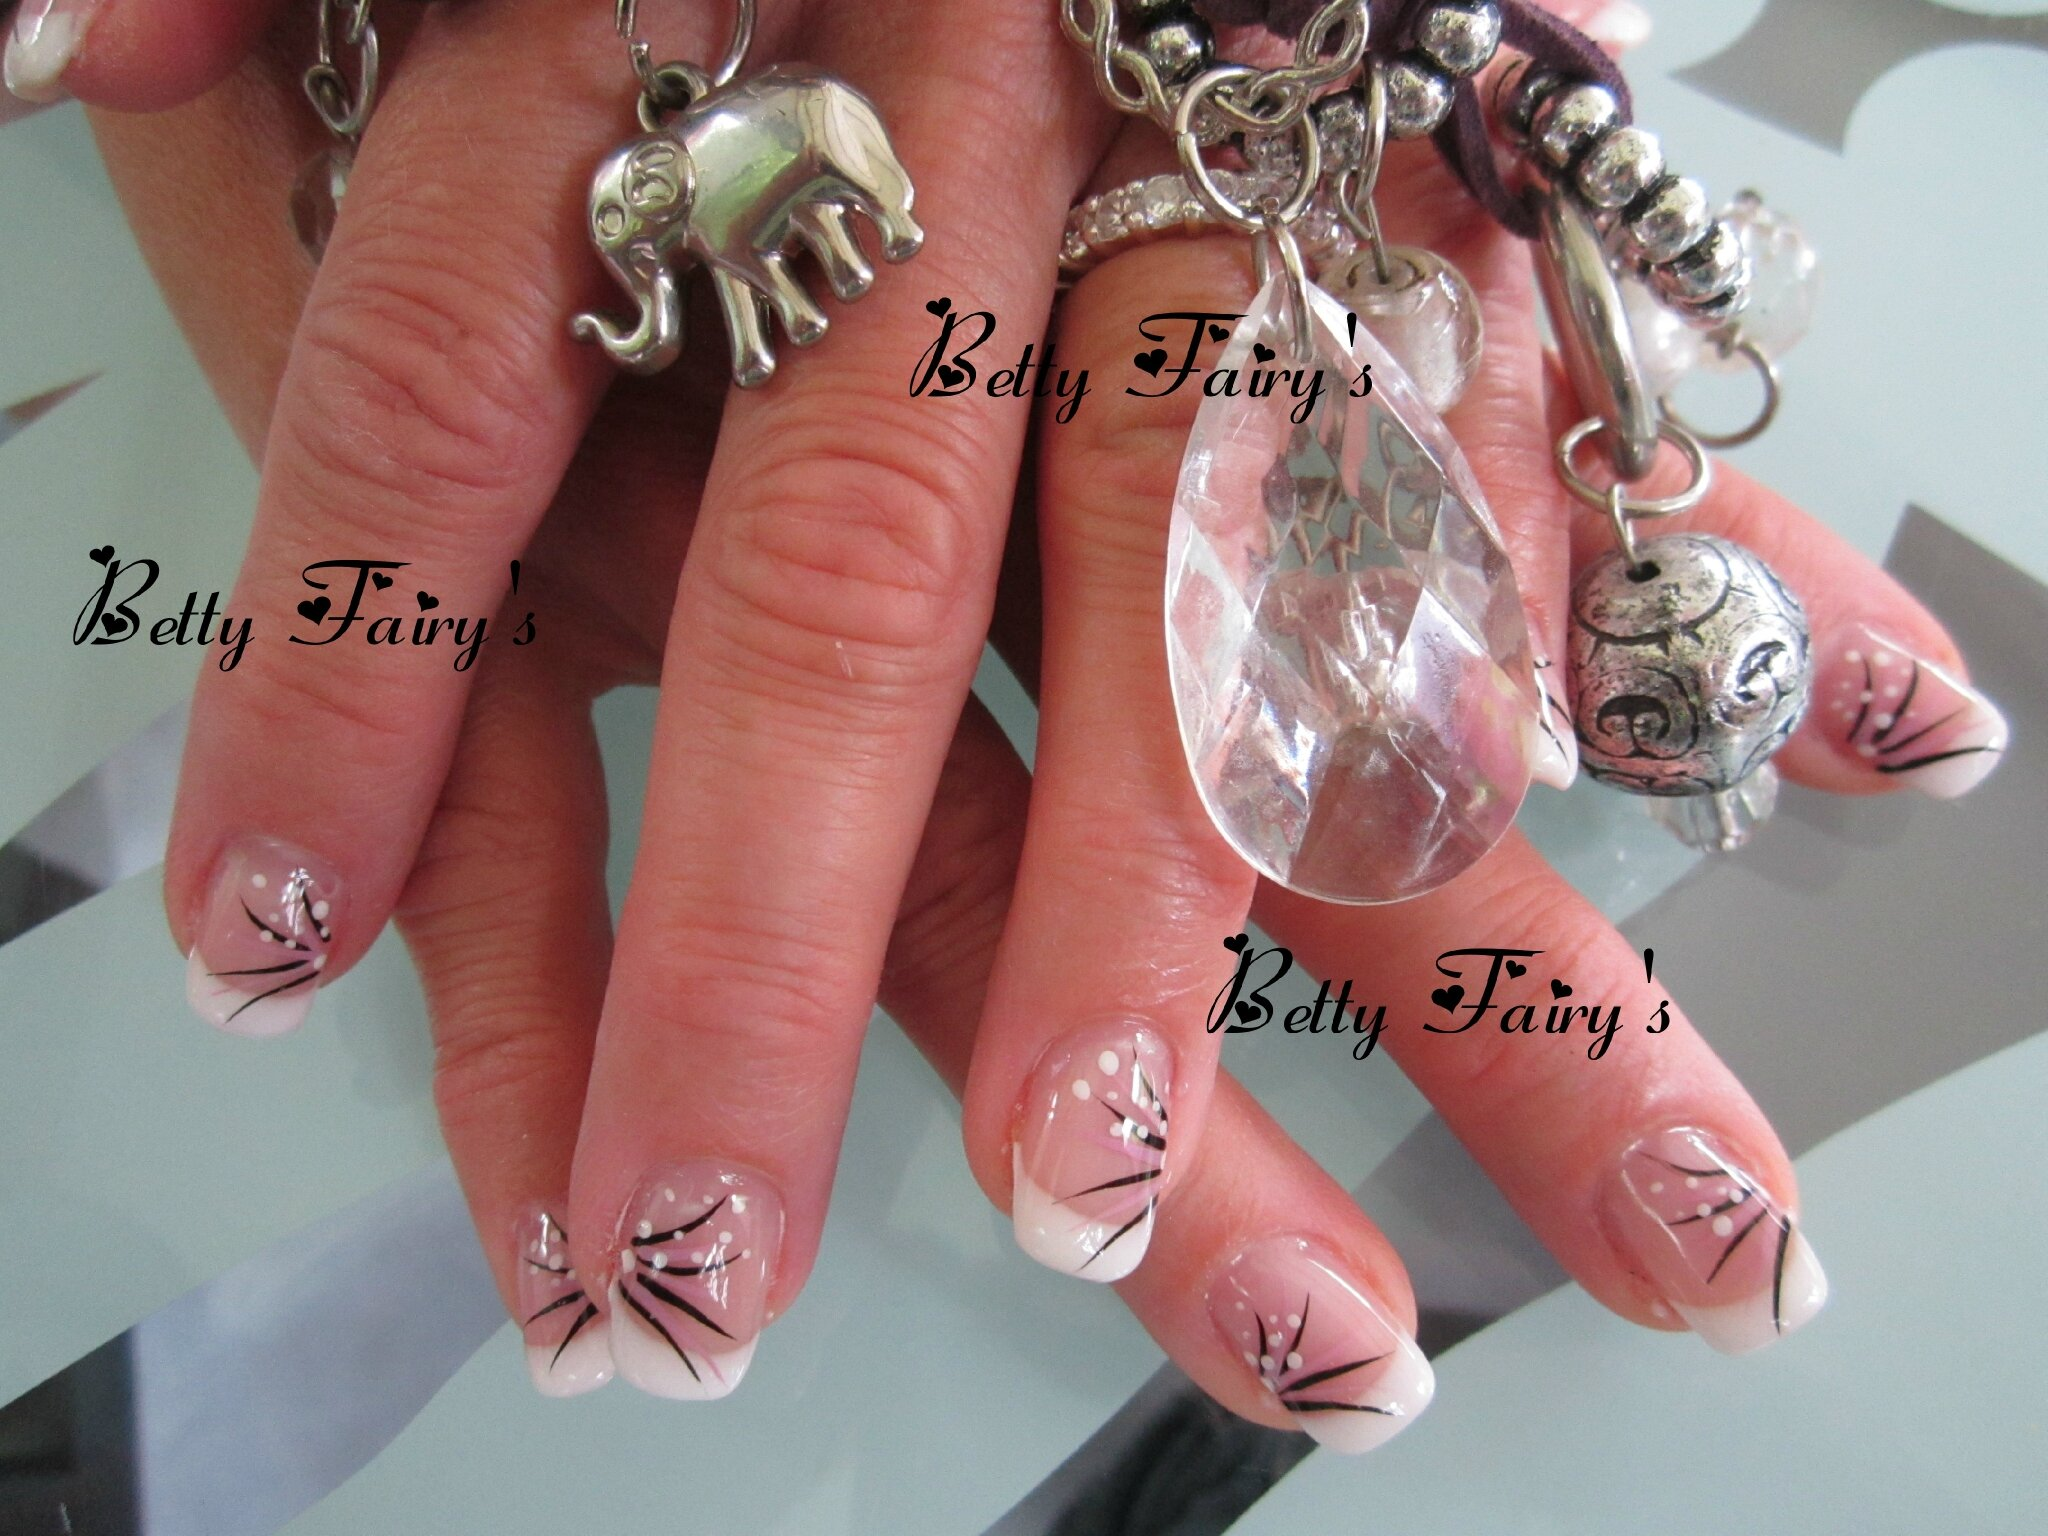 ongles pour mariage noir et blanc. Black Bedroom Furniture Sets. Home Design Ideas